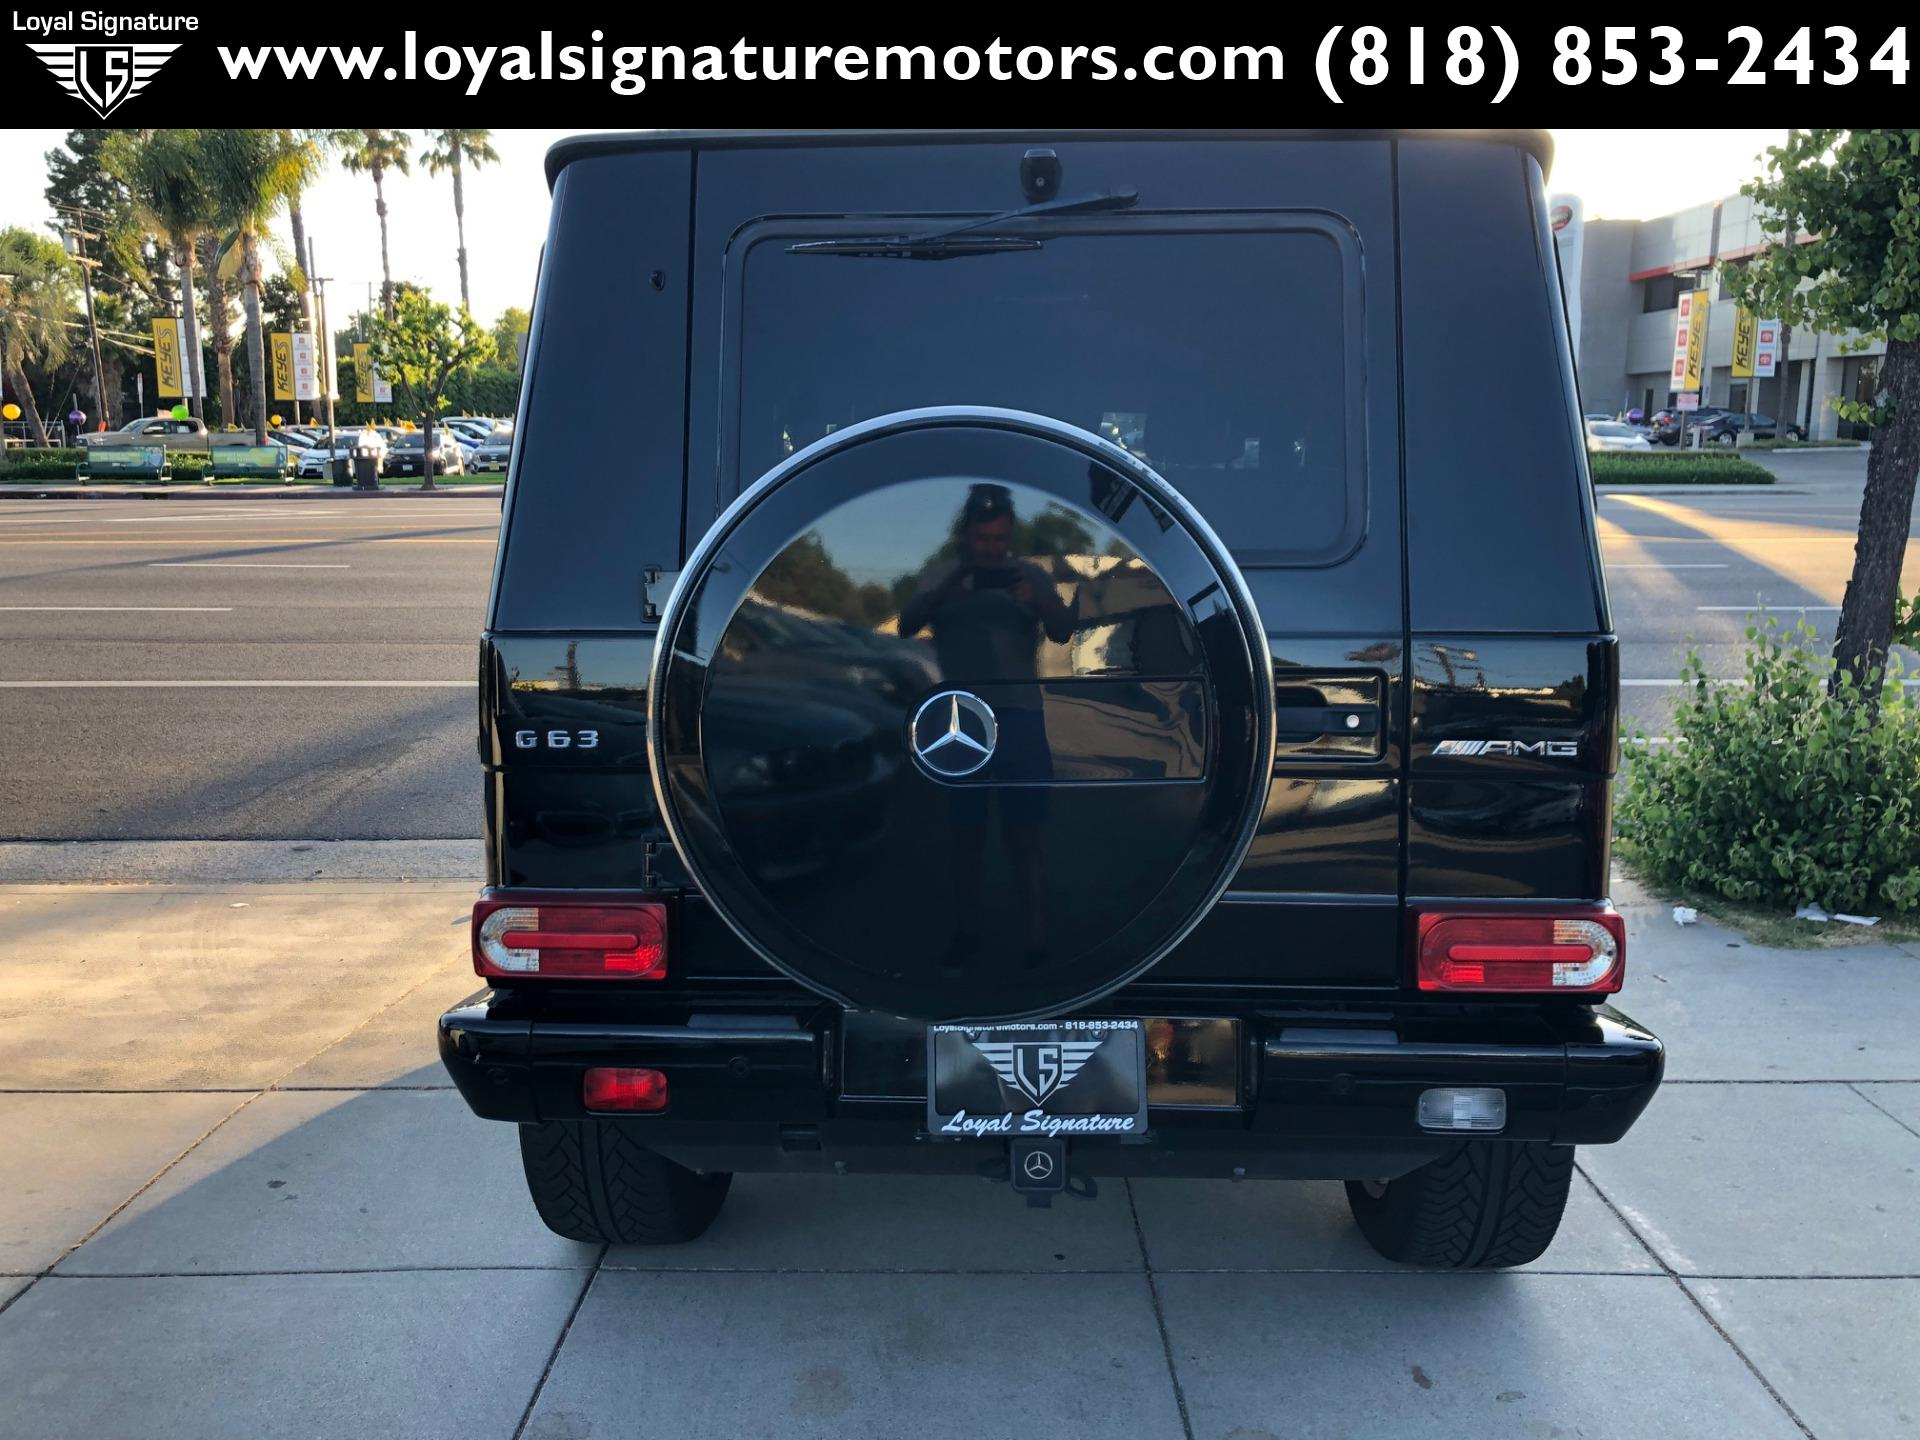 Used-2013-Mercedes-Benz-G-Class-G-63-AMG